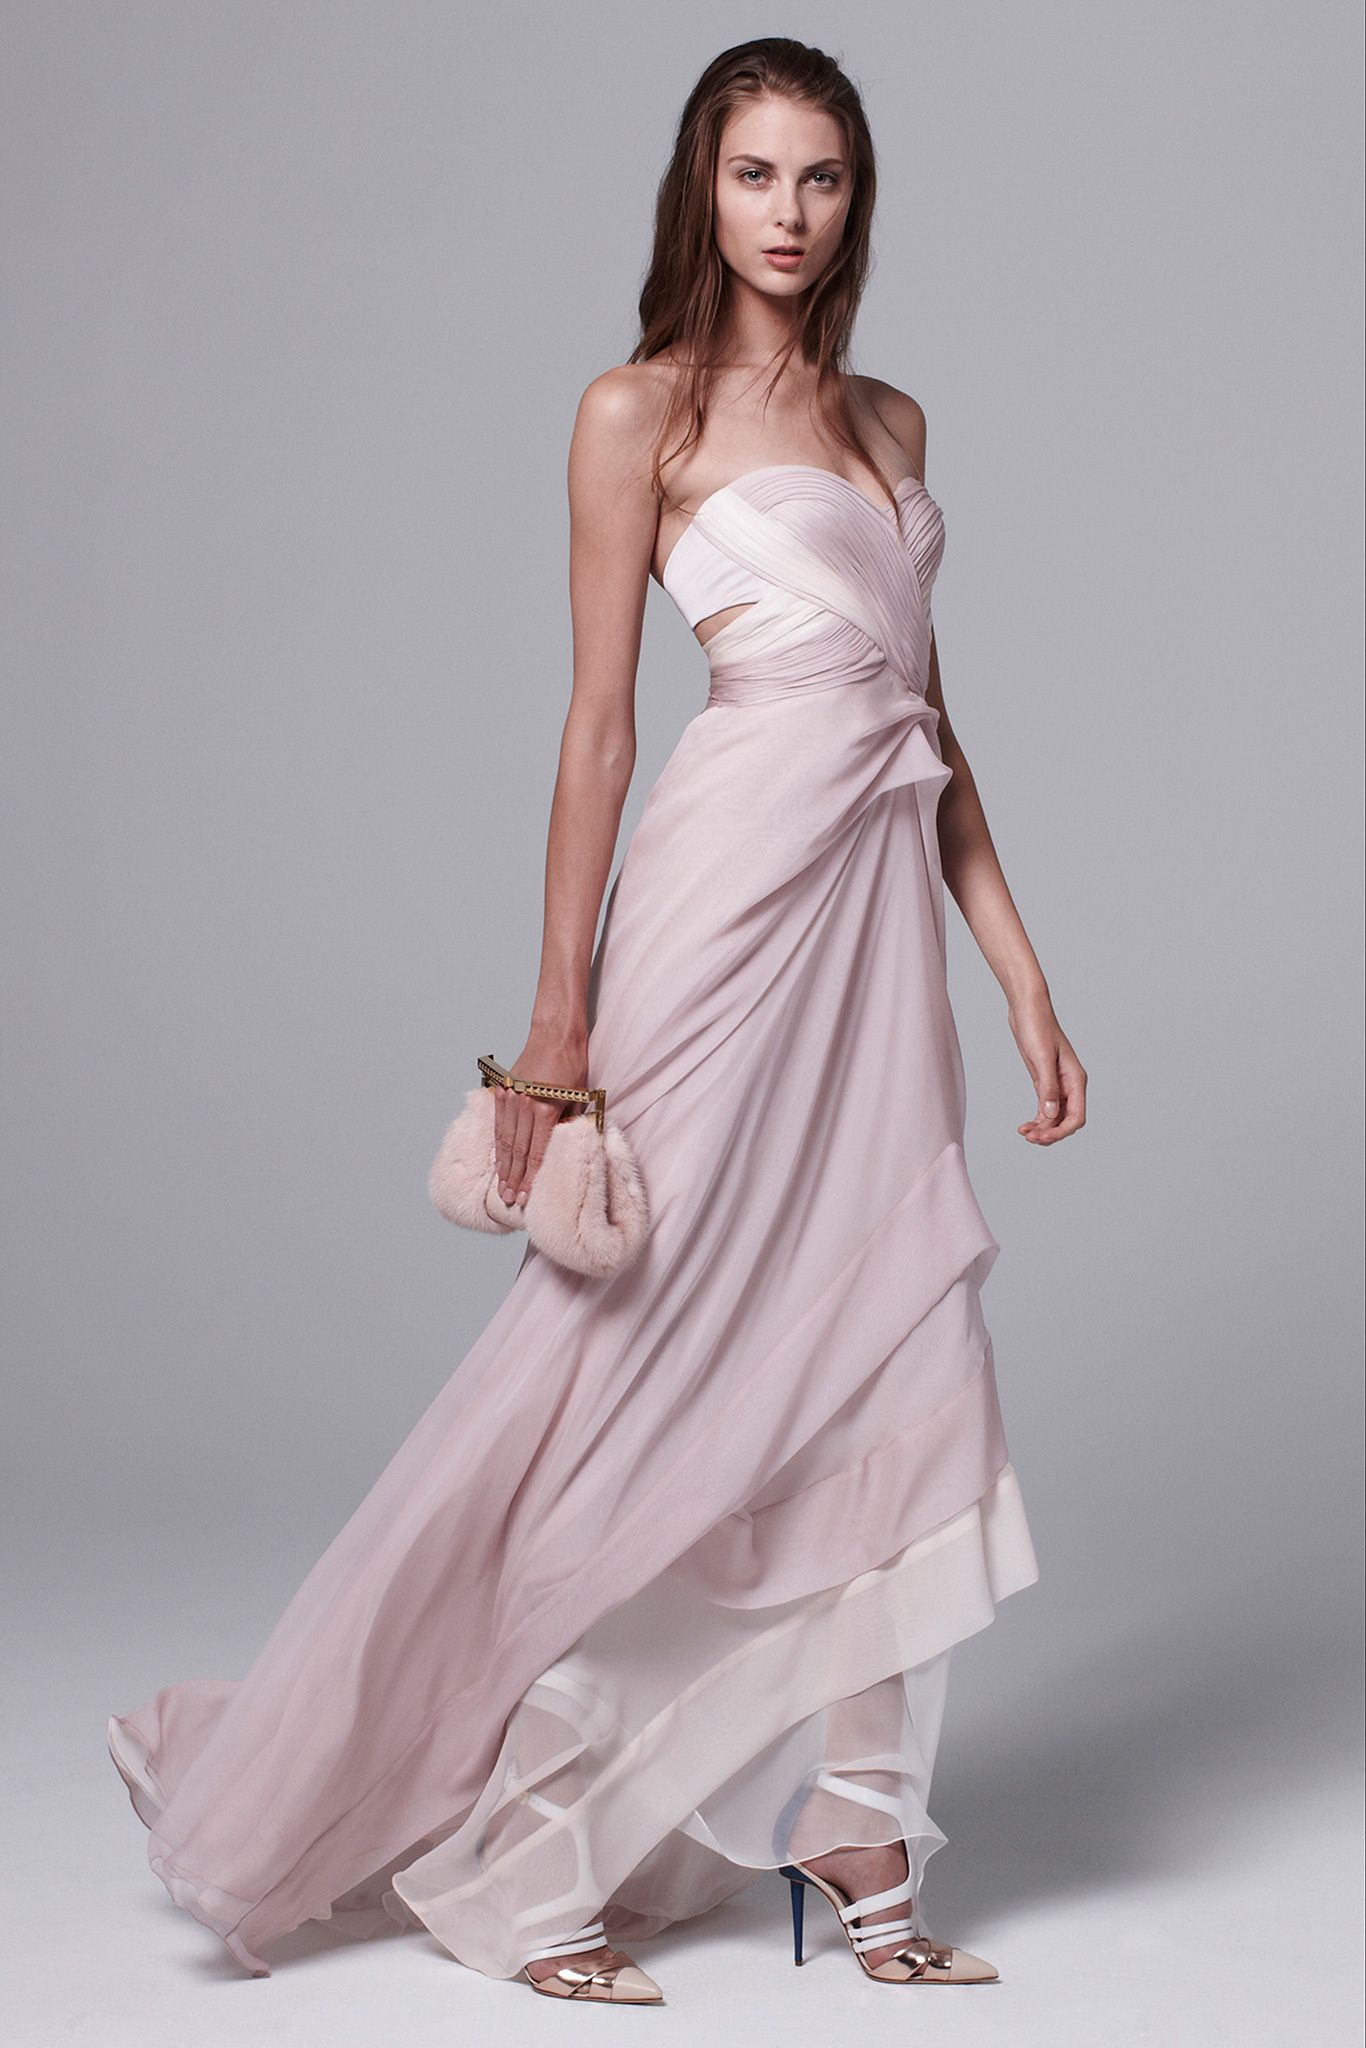 Resort j mendel j mendel pinterest resorts gowns and